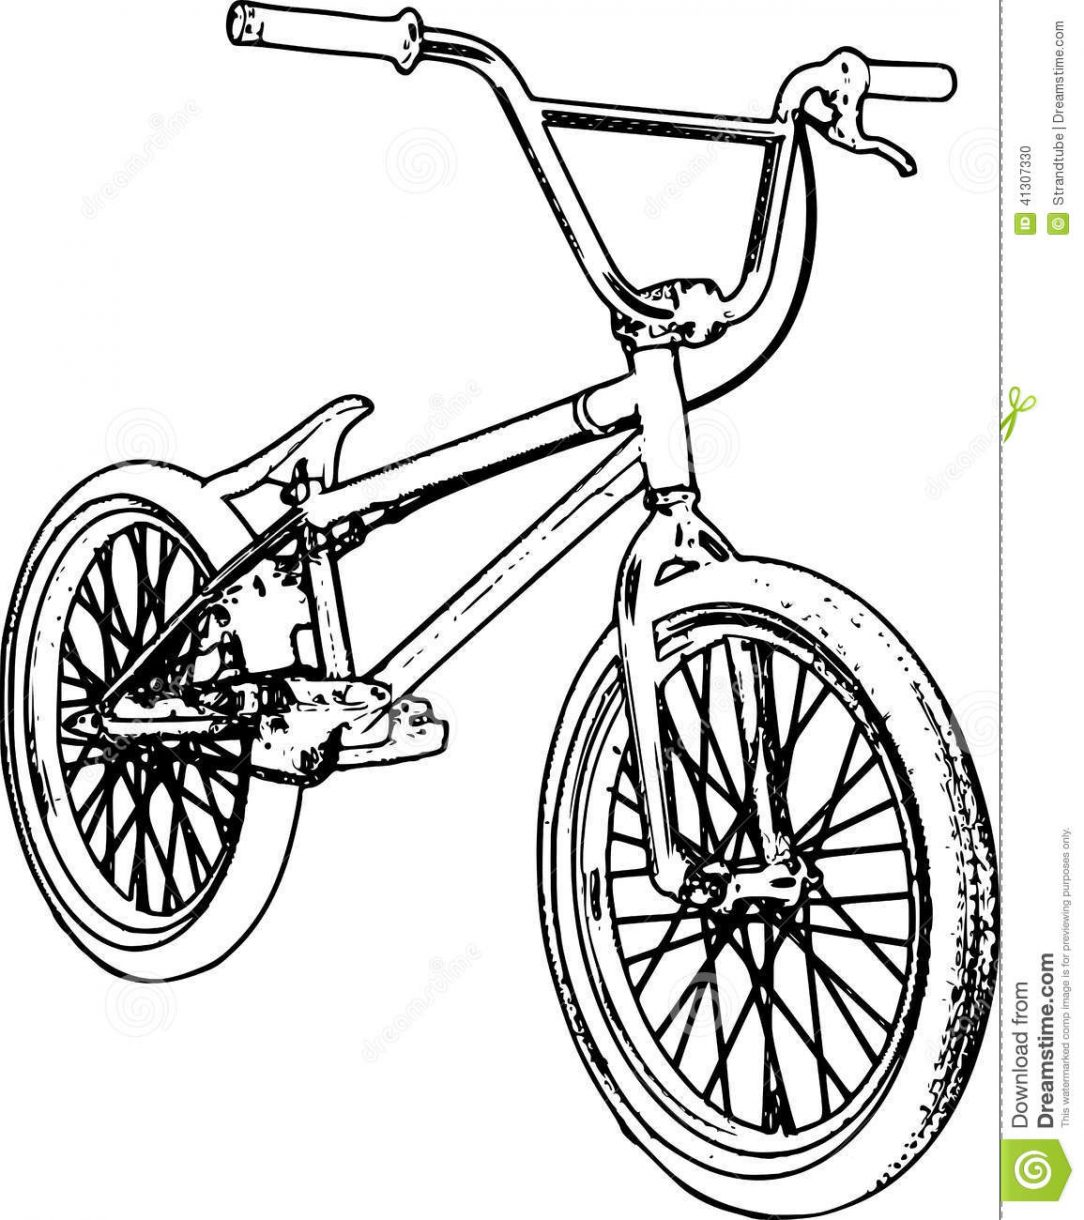 1084x1220 Bike Drawing Experiment Simple Bullet House Image Faces Iydunetwork